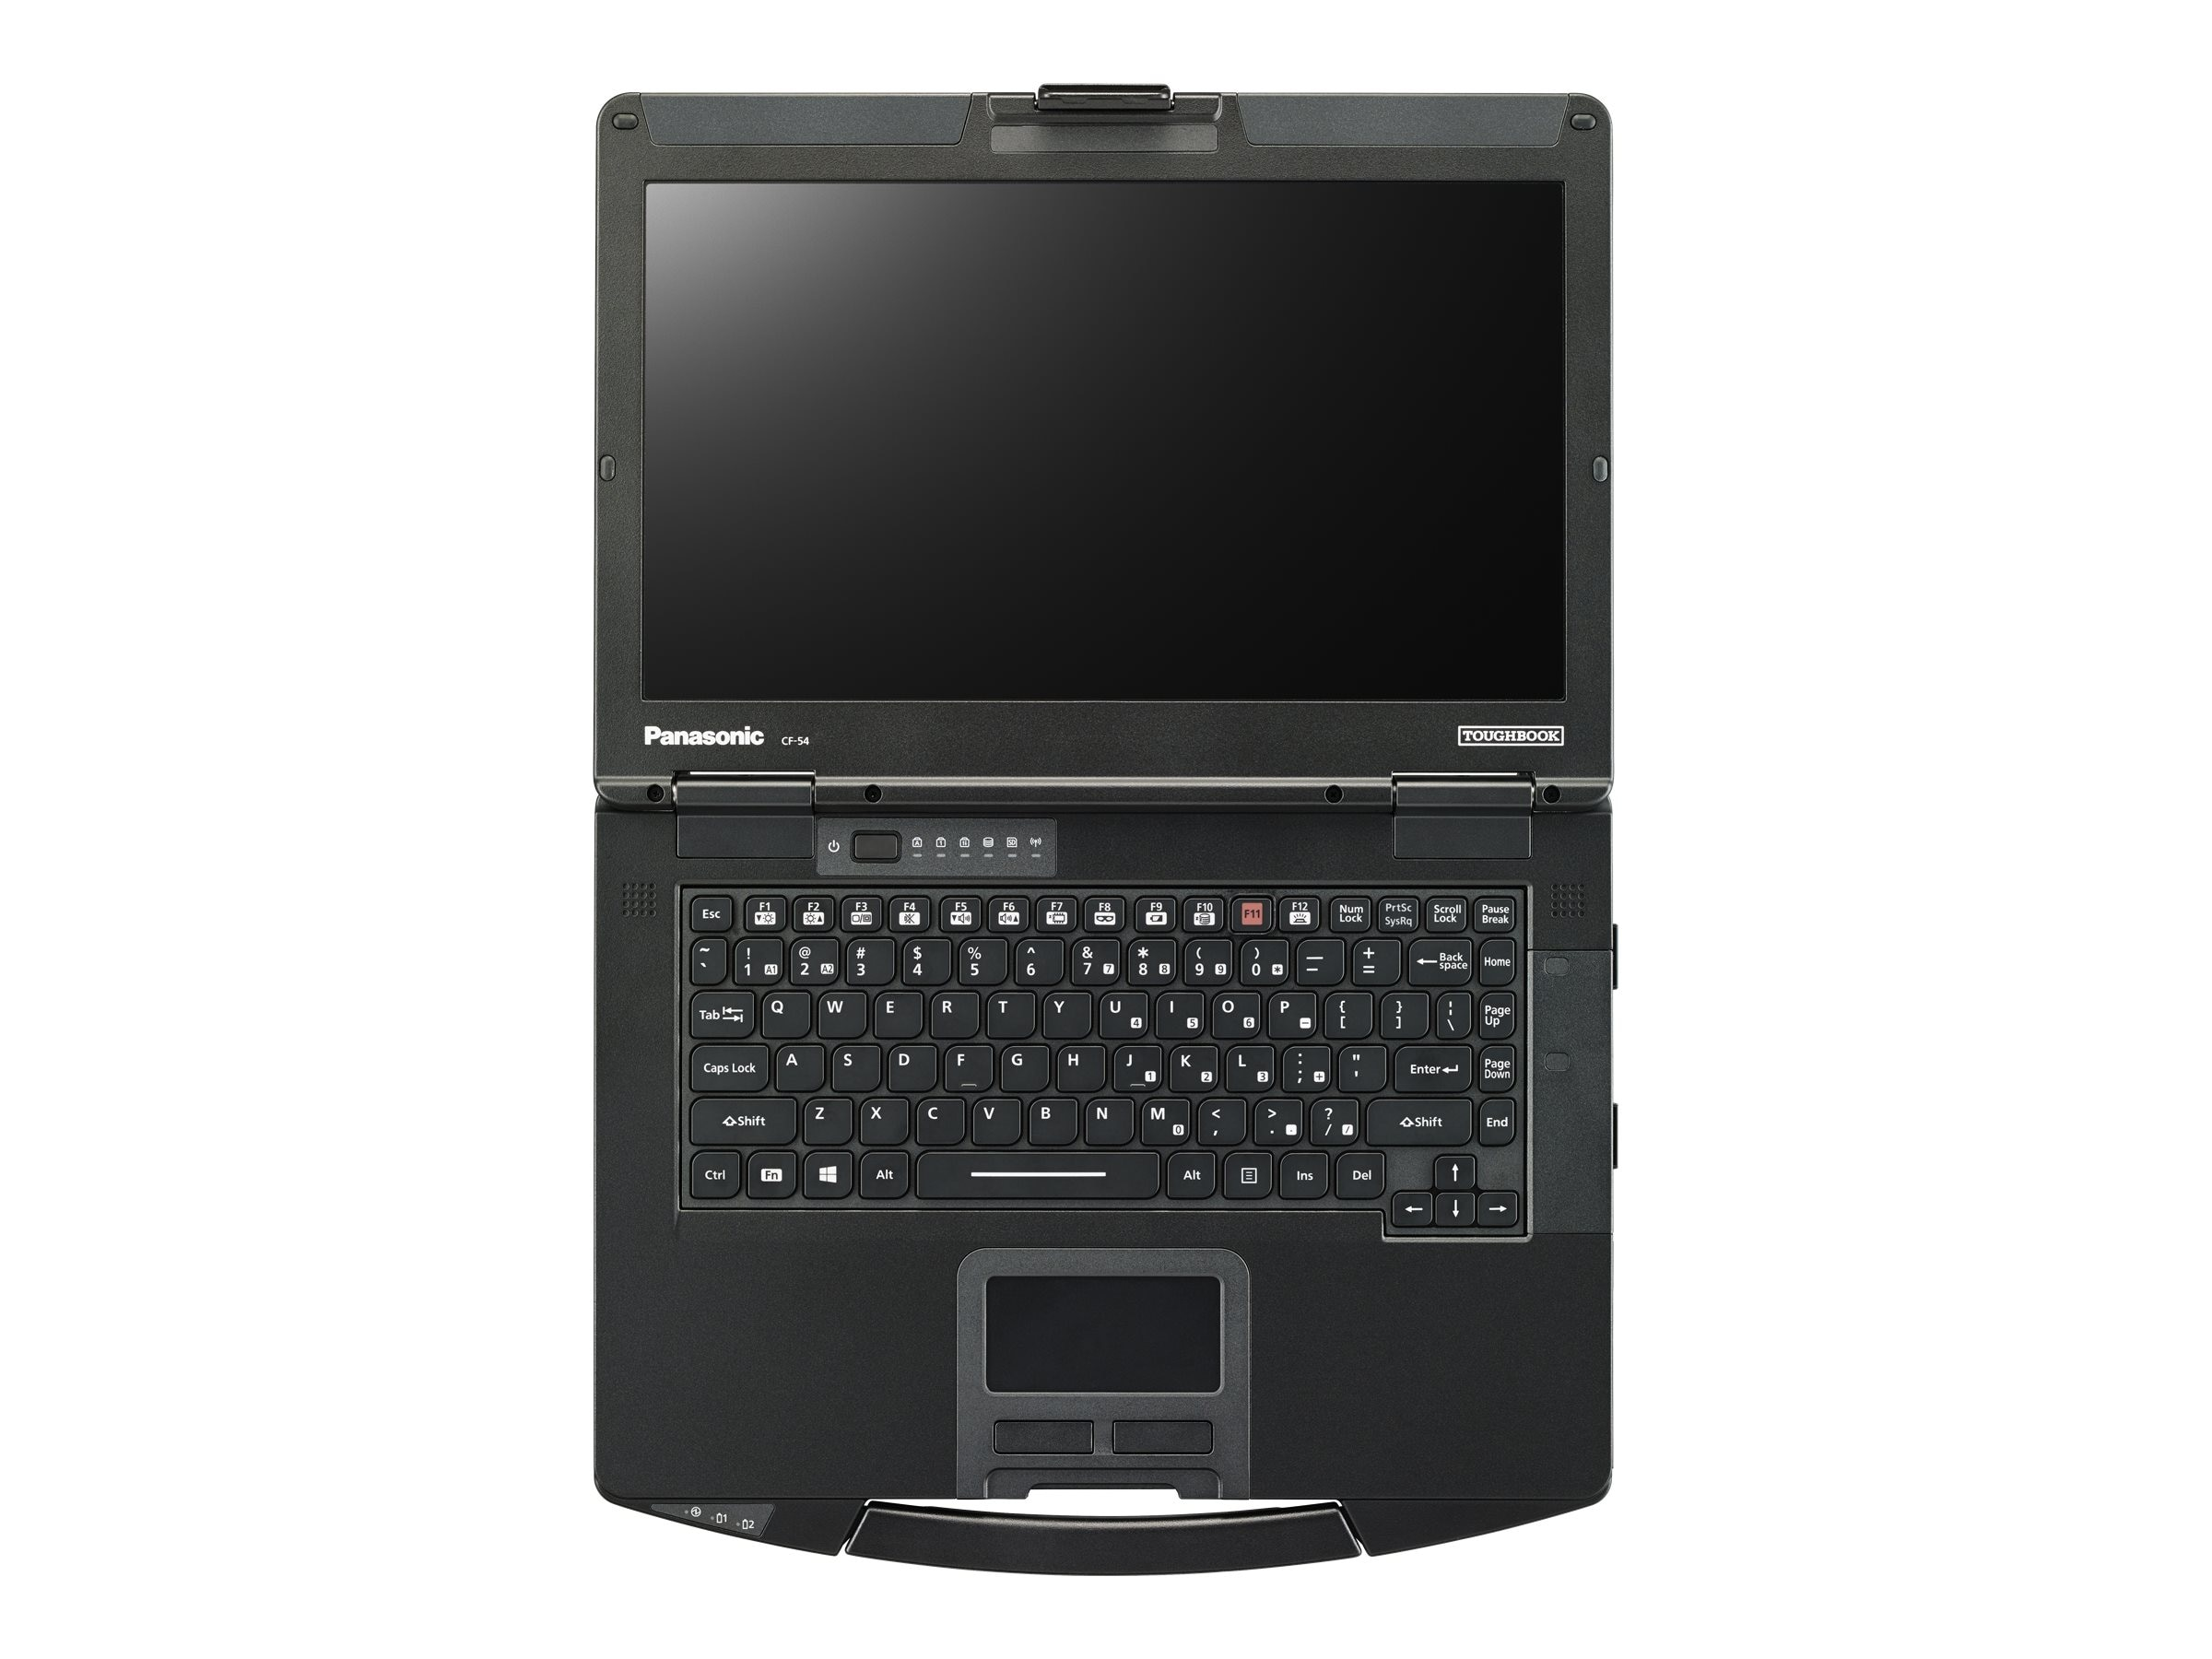 Panasonic Toughbook 54 2.4GHz Core i5 14in display, CF-54F5886KM